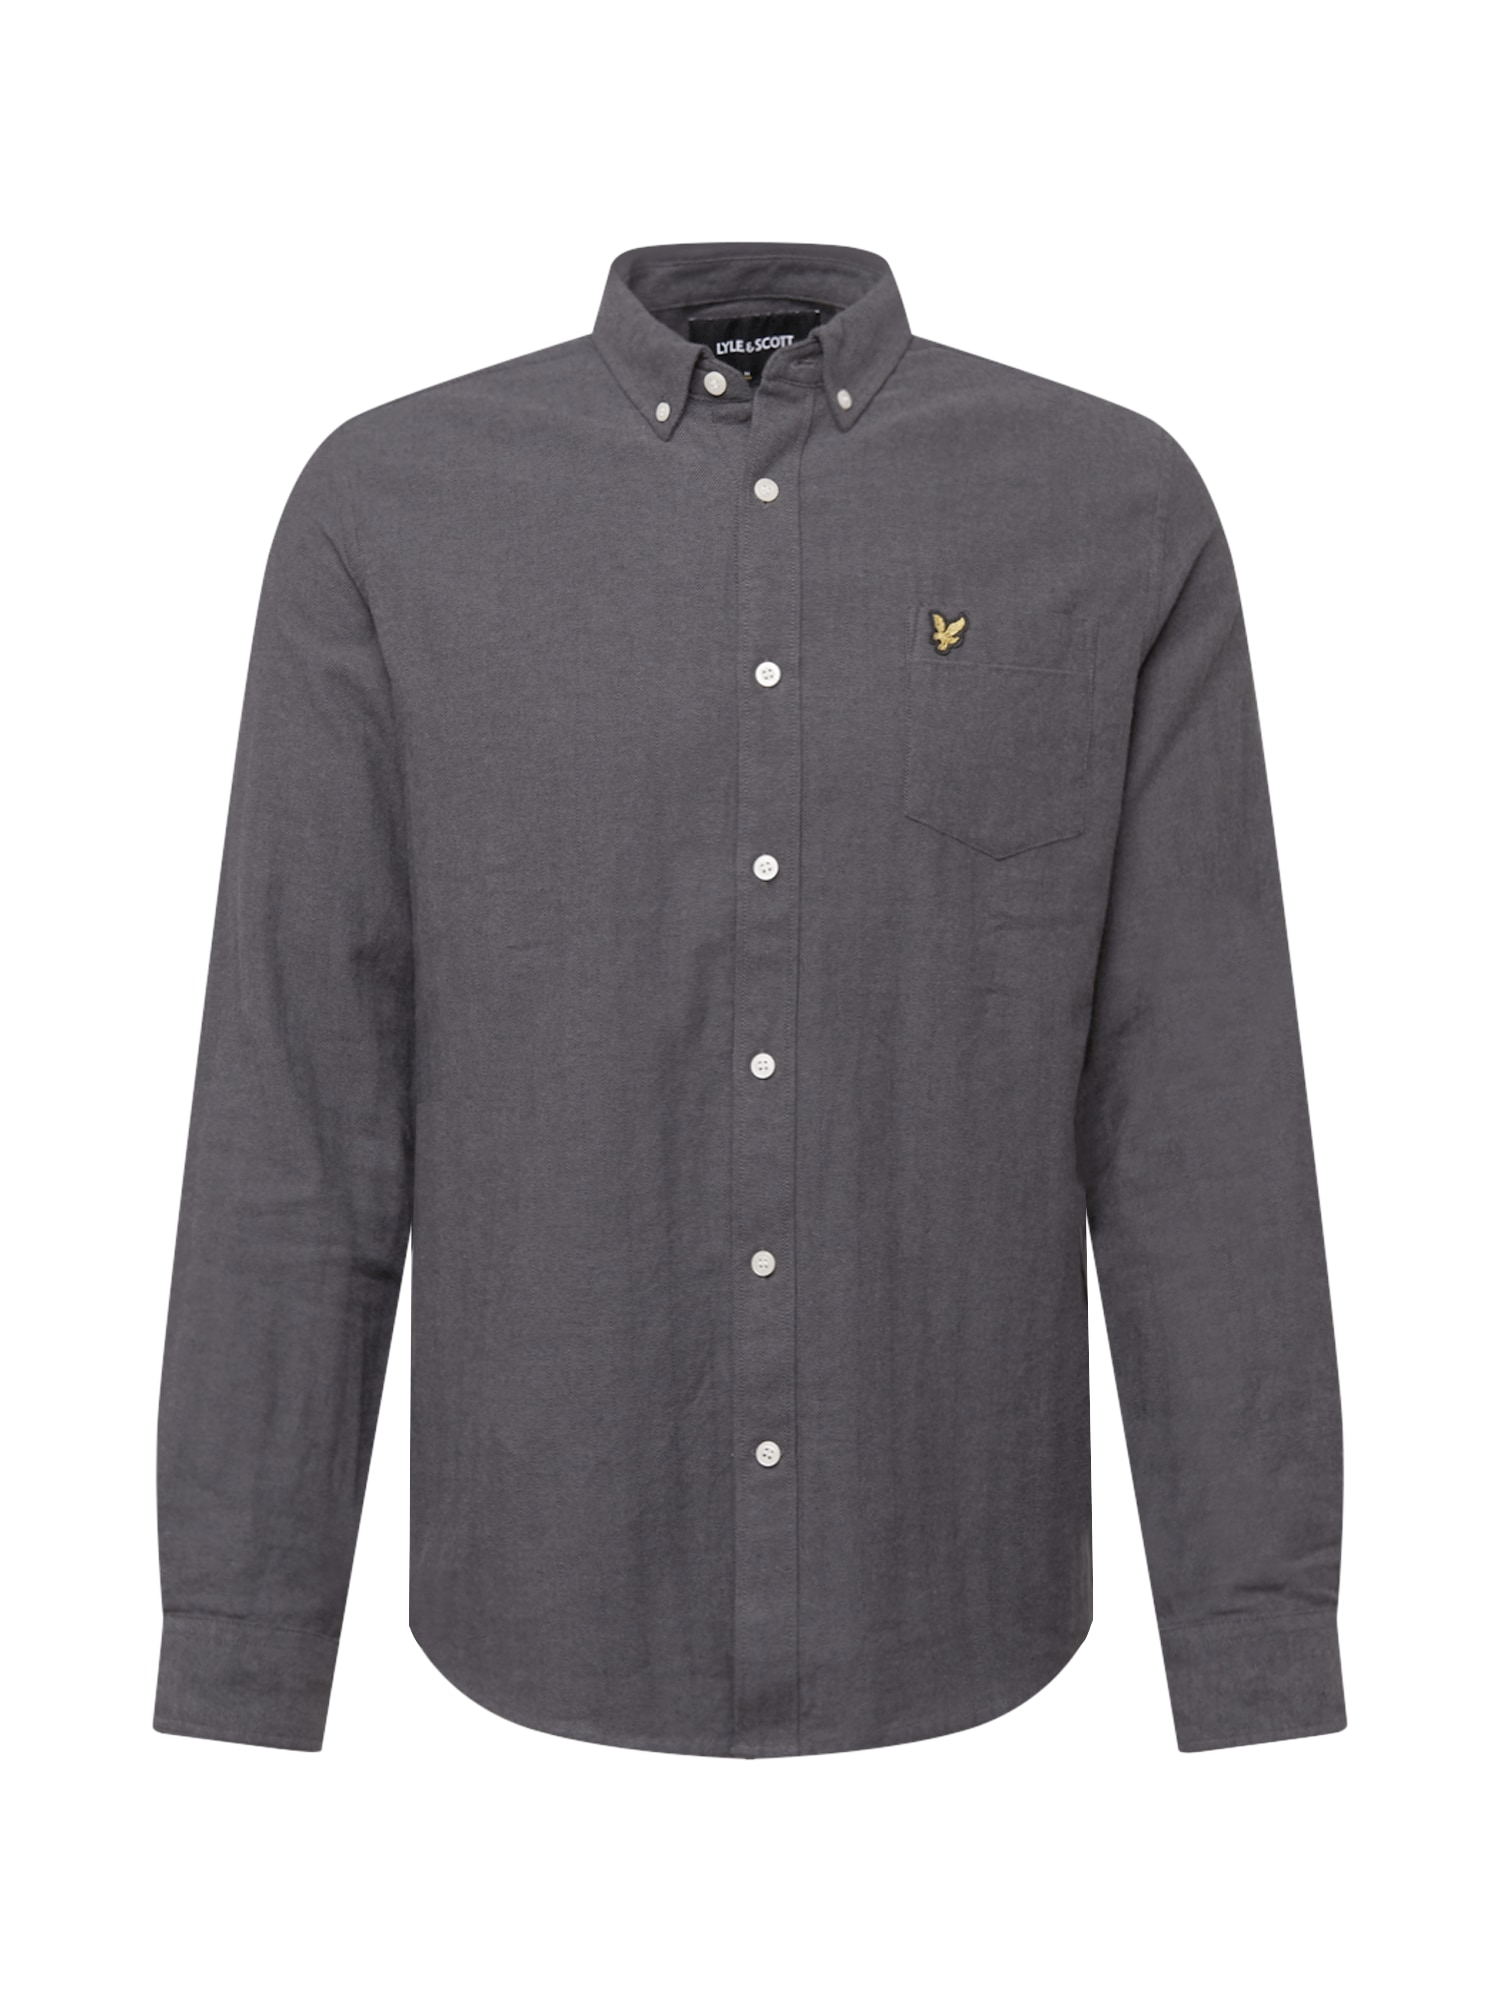 Lyle & Scott Košile 'Brushed Herringbone'  šedá